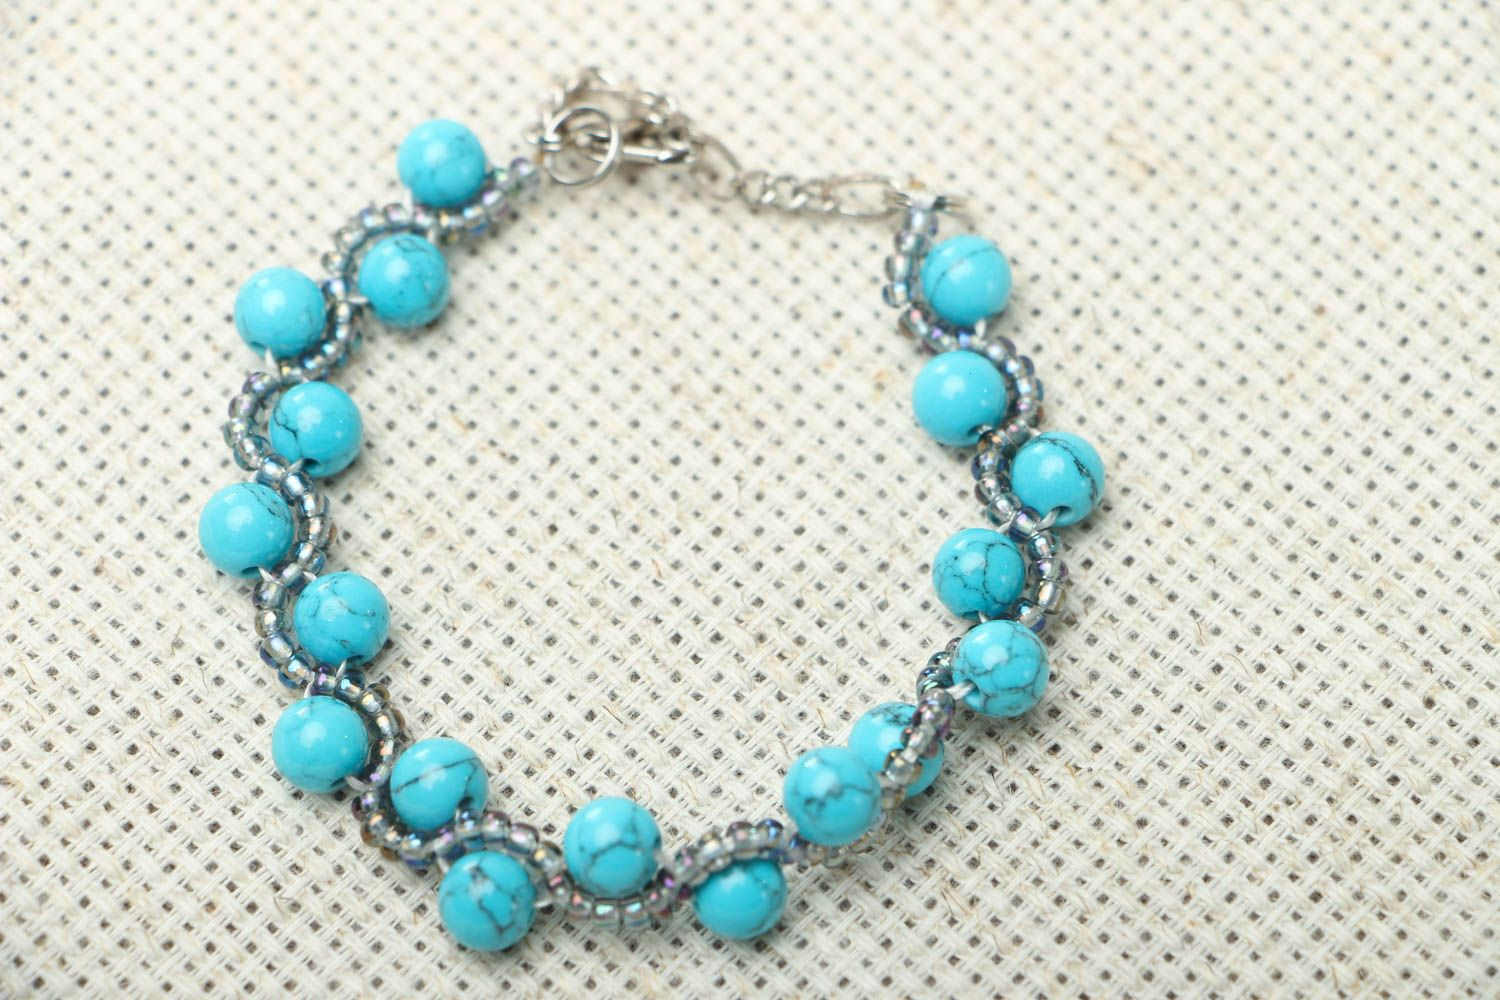 Bracelet with turquoise stone photo 1